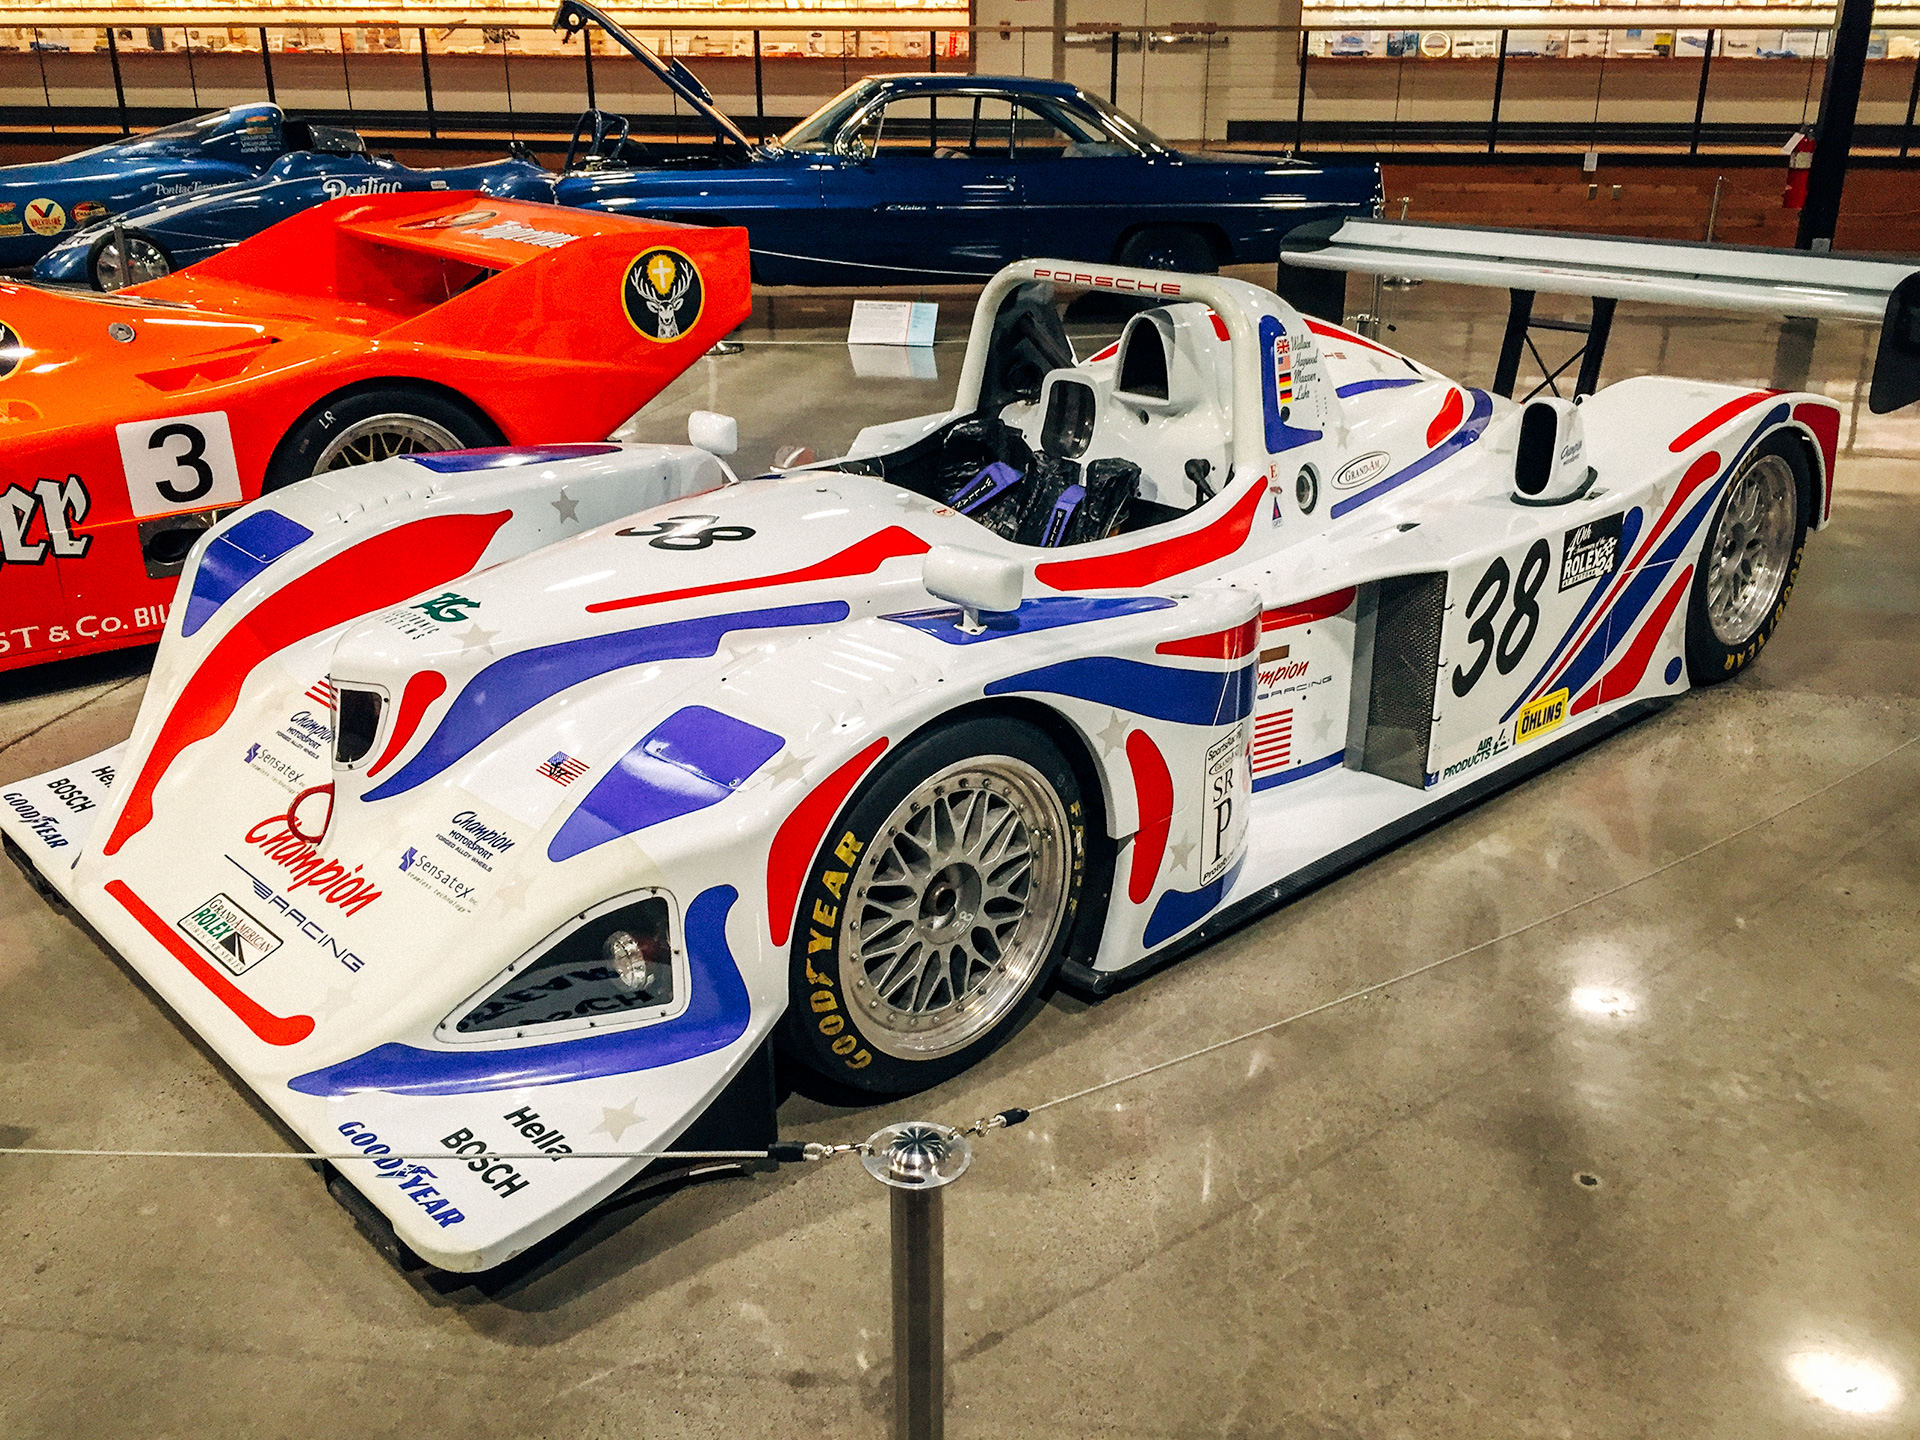 white, blue, and red champion racing race car at the World of Speed Museum